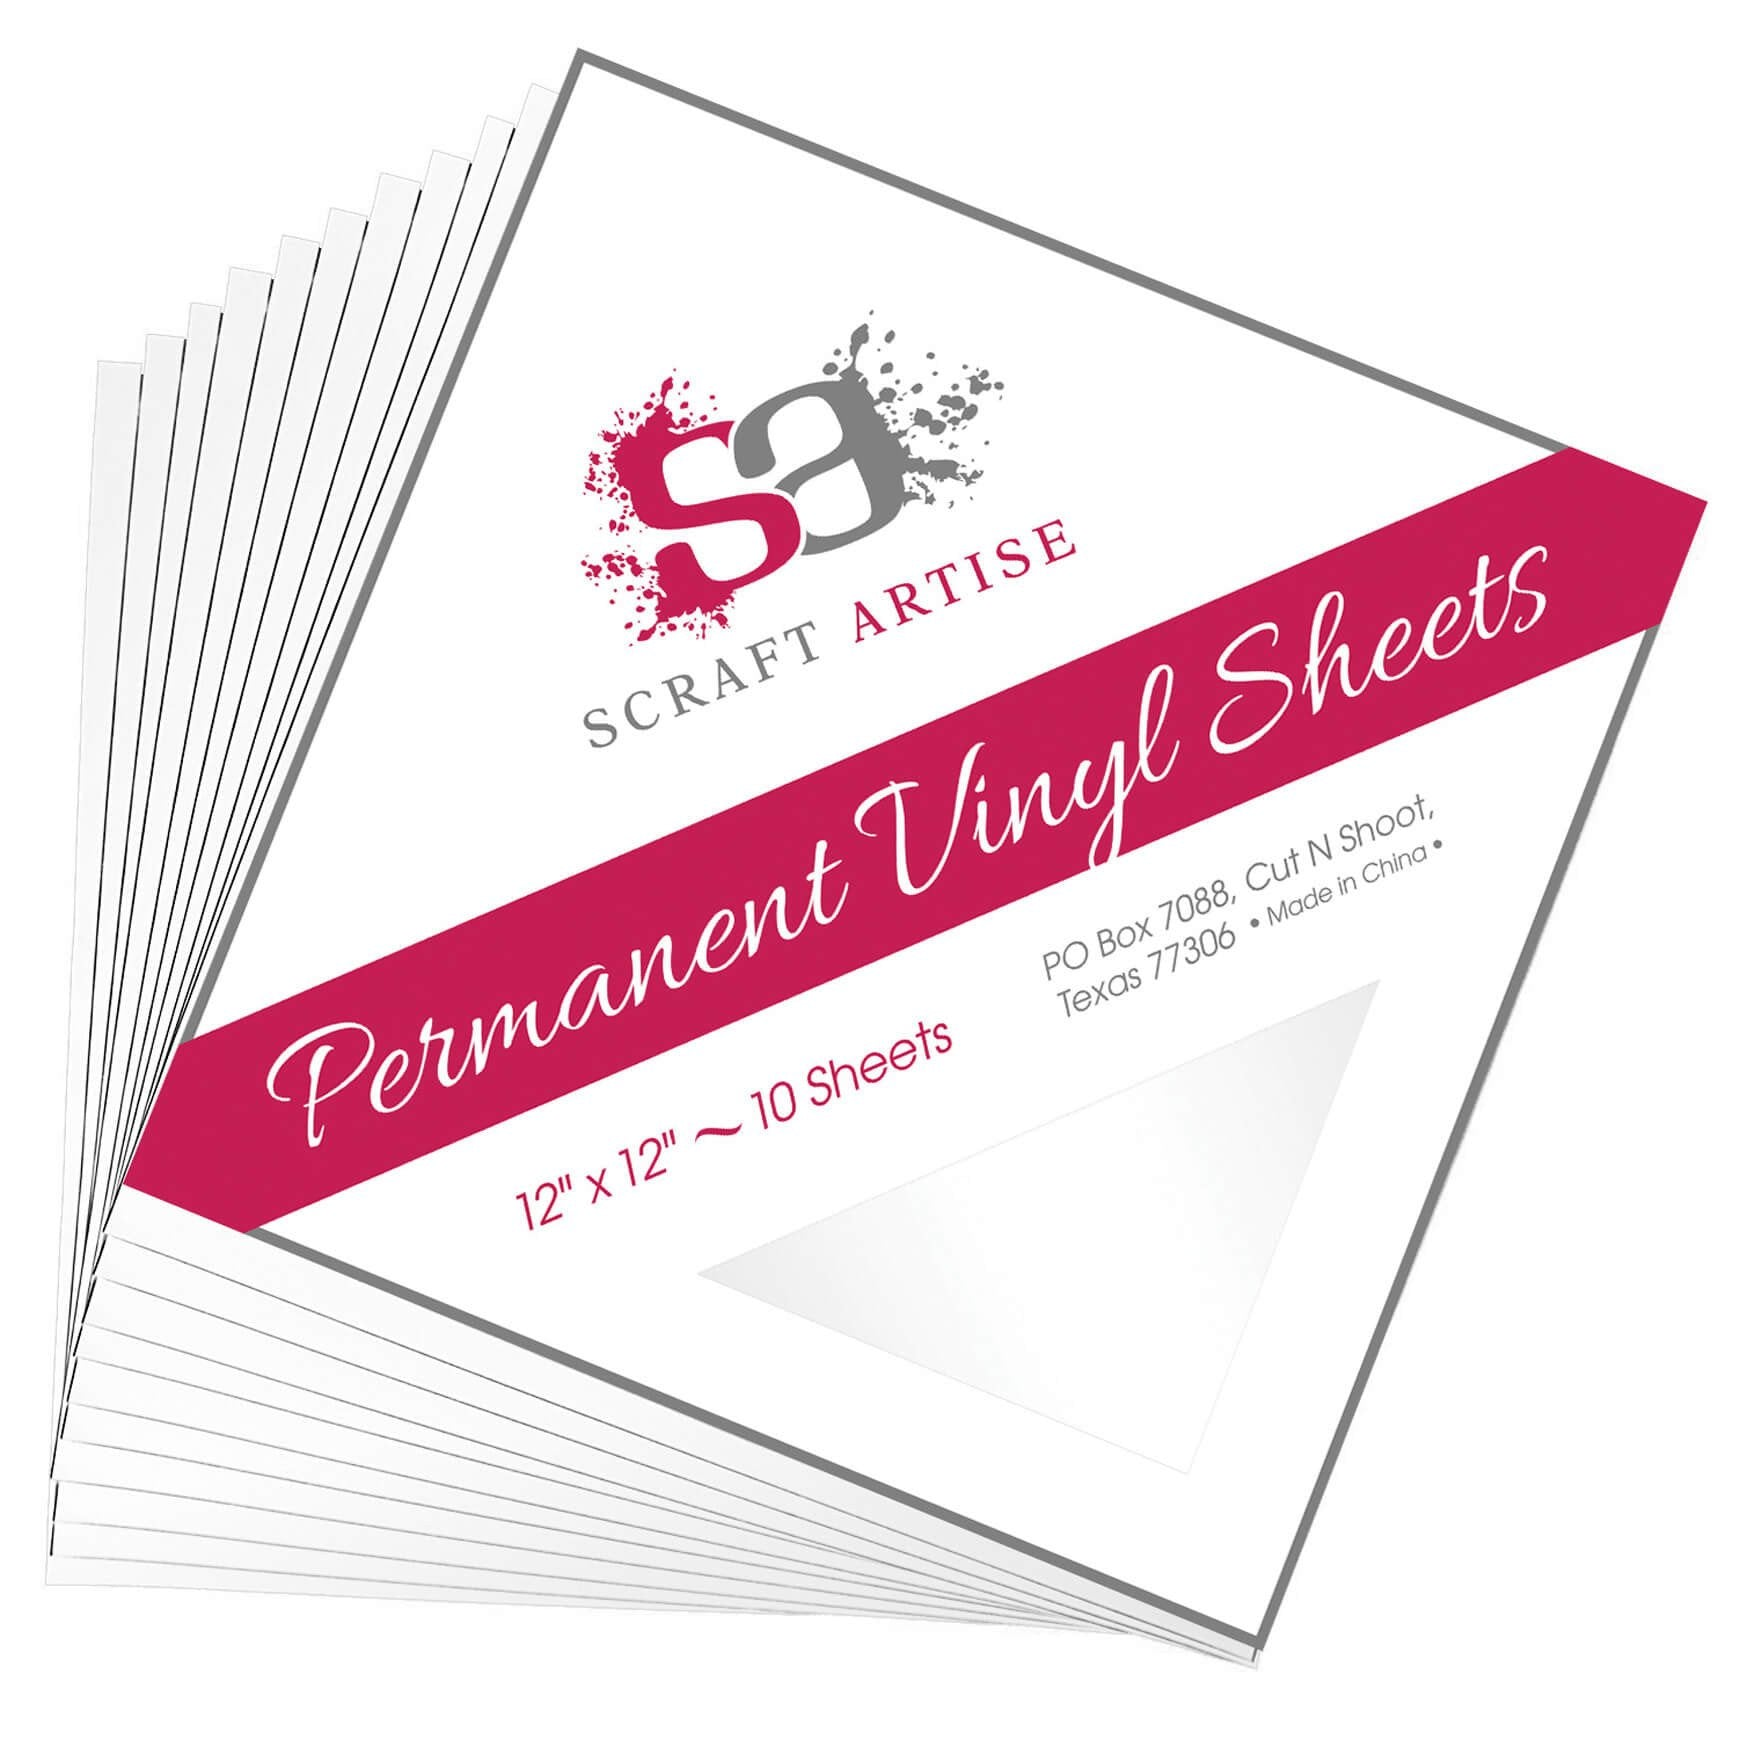 Scraft Artise White Glossy Permanent Adhesive Craft Vinyl 12 x 12 Sheets - 10 Pack